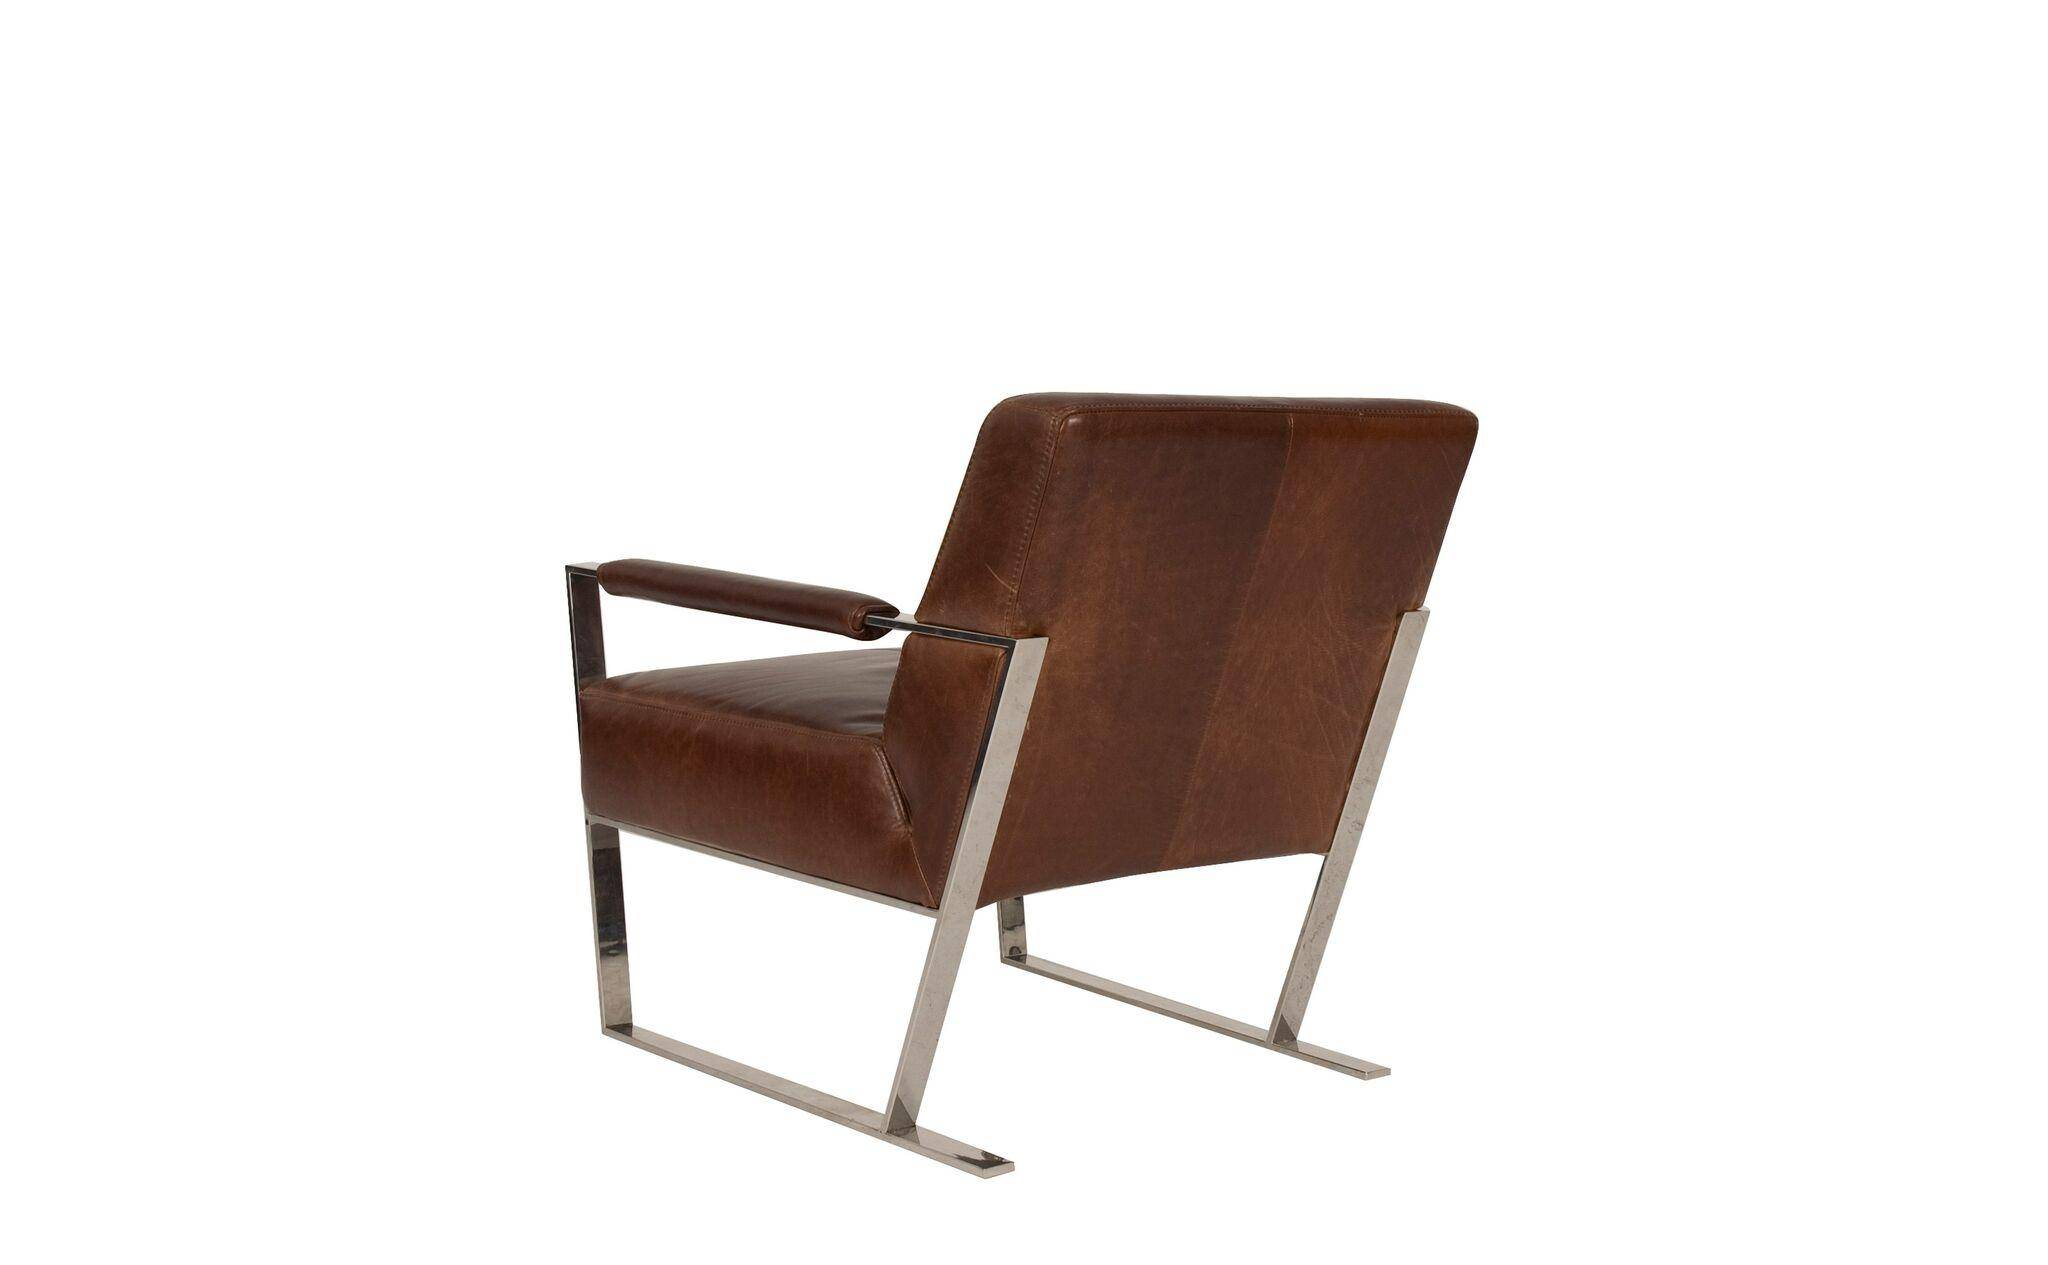 Superb Moroni Uno 537 Cognac Top Grain Leather Upholstery Ibusinesslaw Wood Chair Design Ideas Ibusinesslaworg